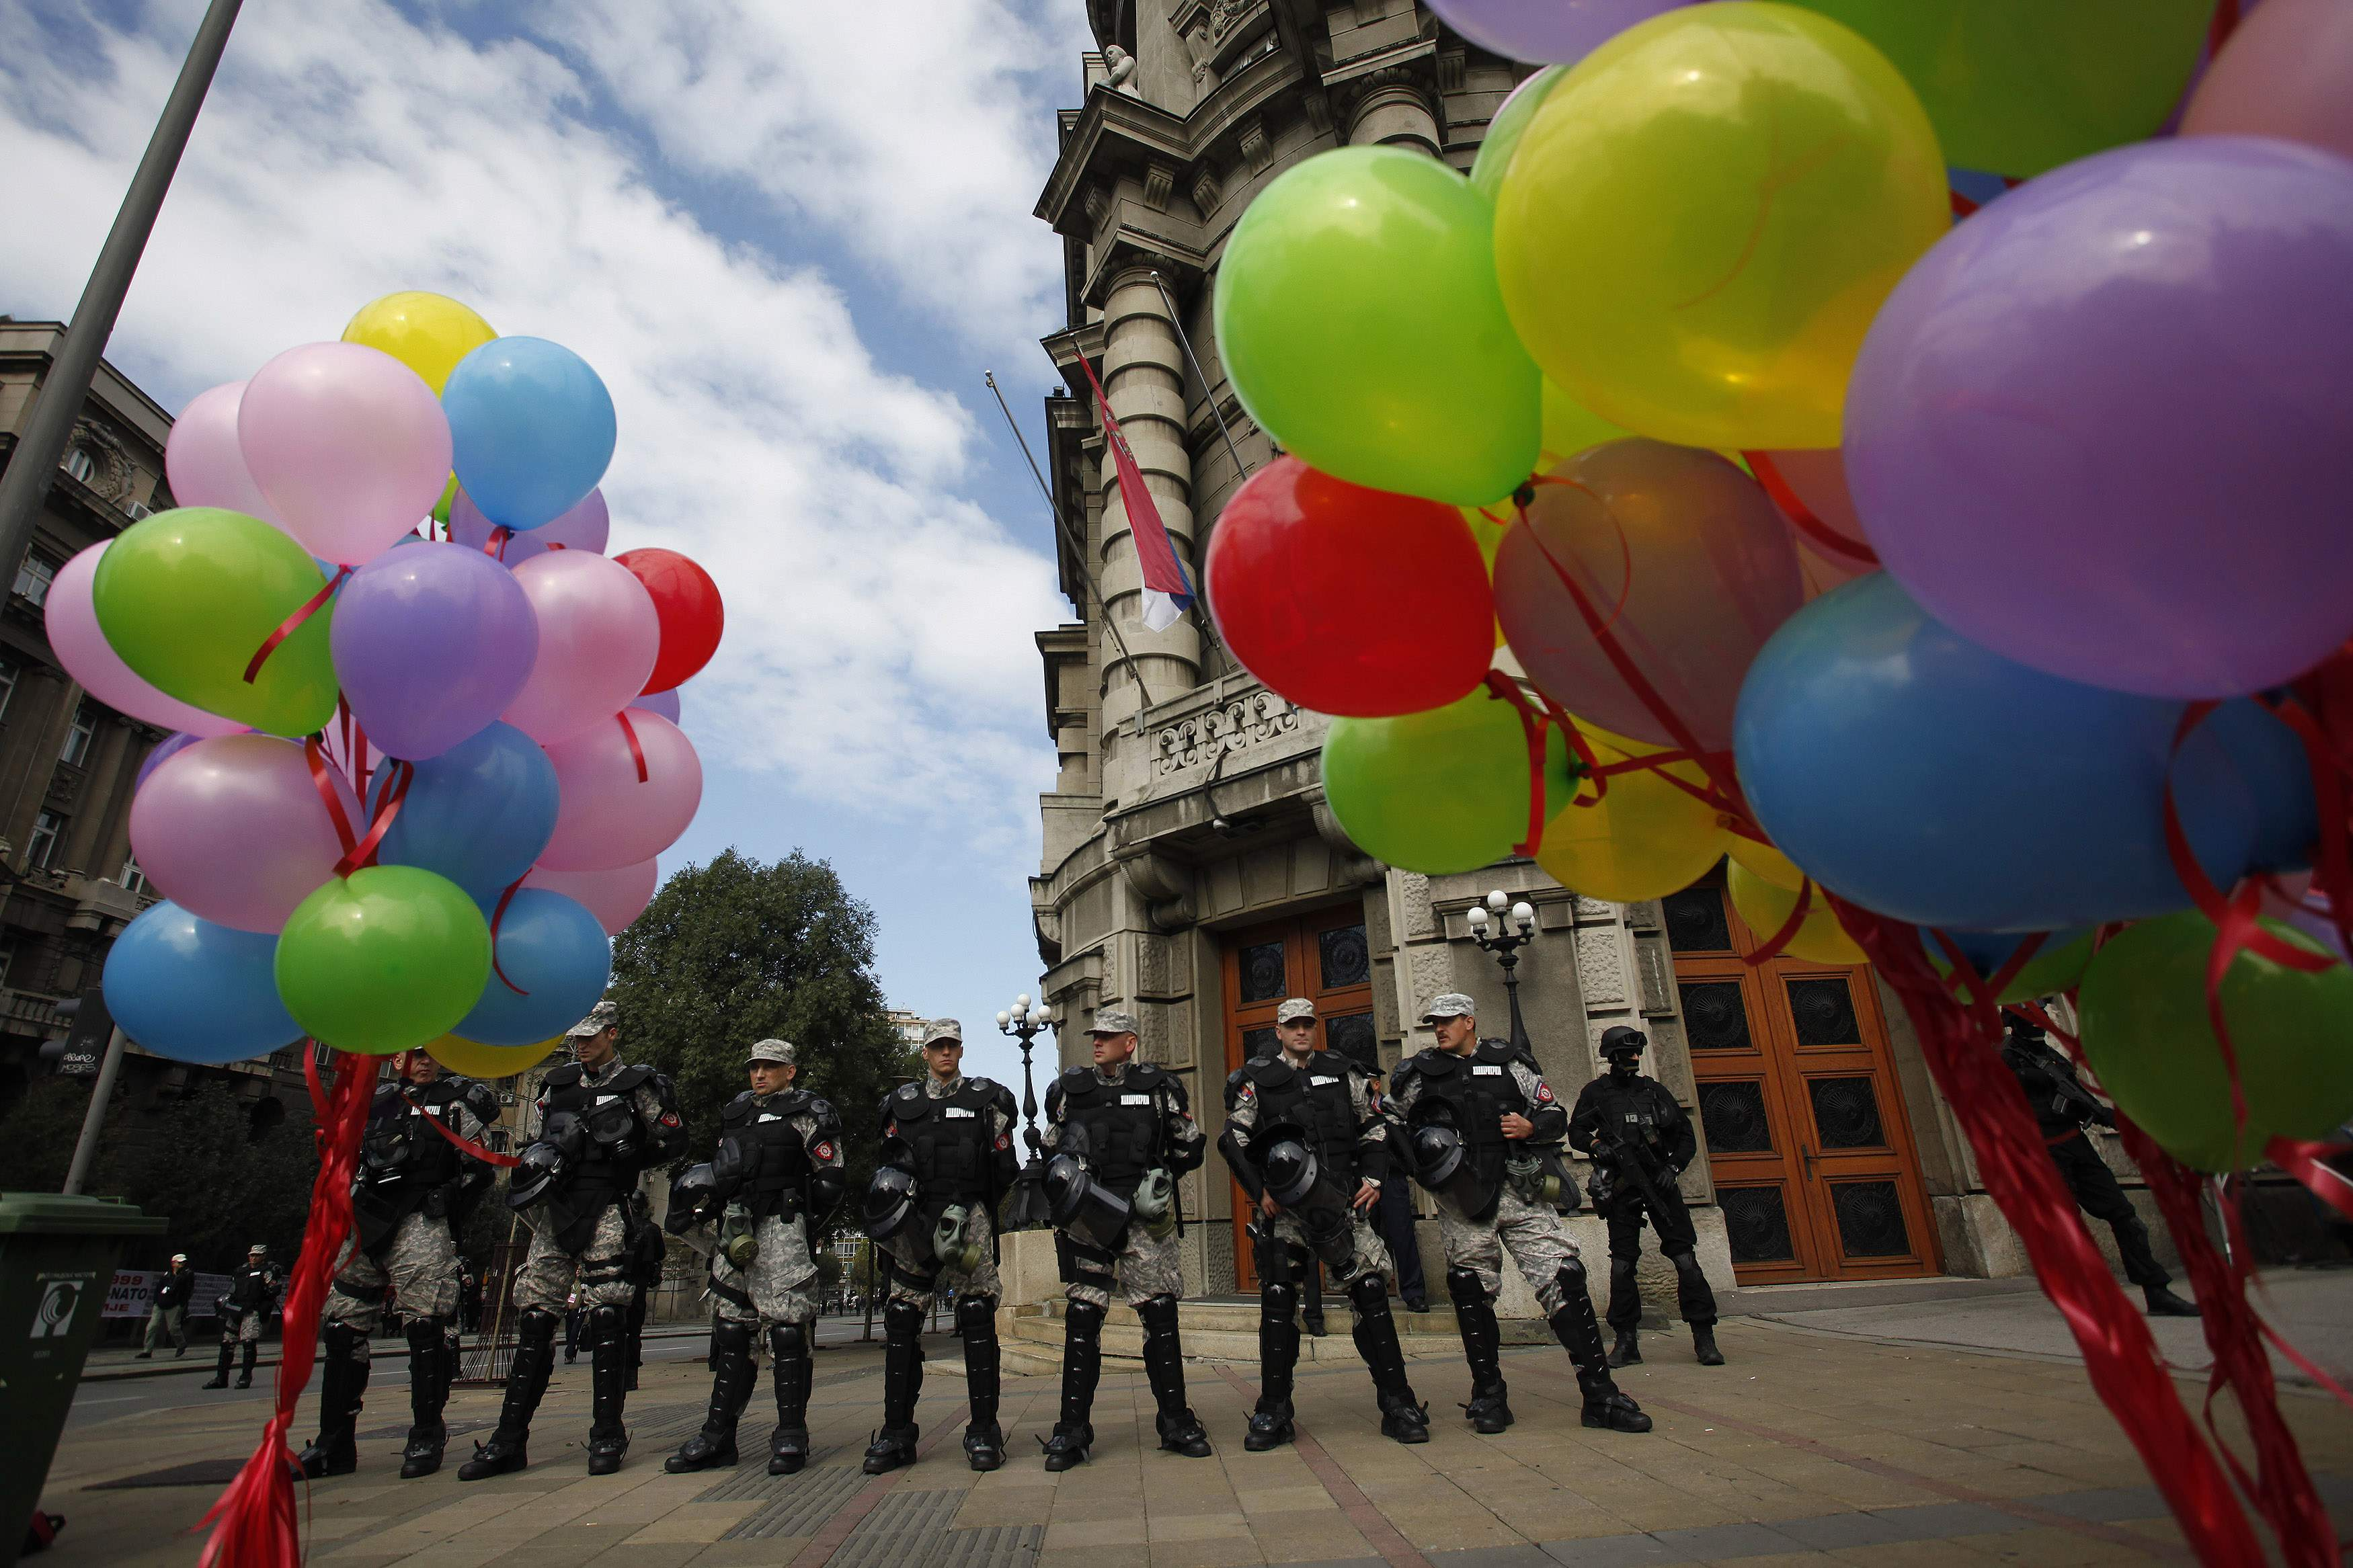 Riot police stand guard during a Pride march in Belgrade, September 28, 2014. Gay rights activists in Serbia held their first Pride march in four years on Sunday, walking through Belgrade streets emptied of traffic and pedestrians by a massive security op